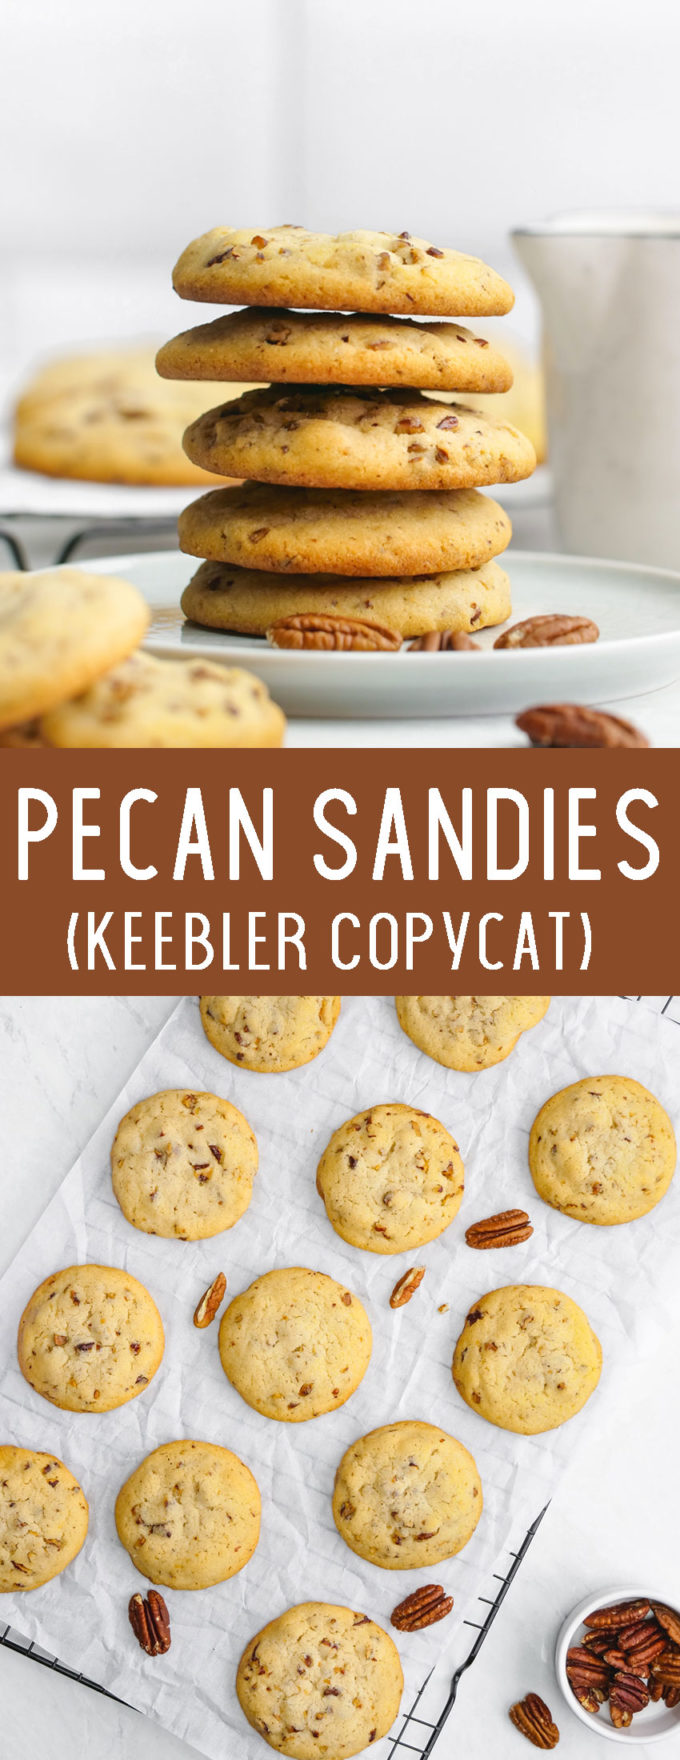 Easy to make, deliciously buttery Pecan Sandies copycat cookies